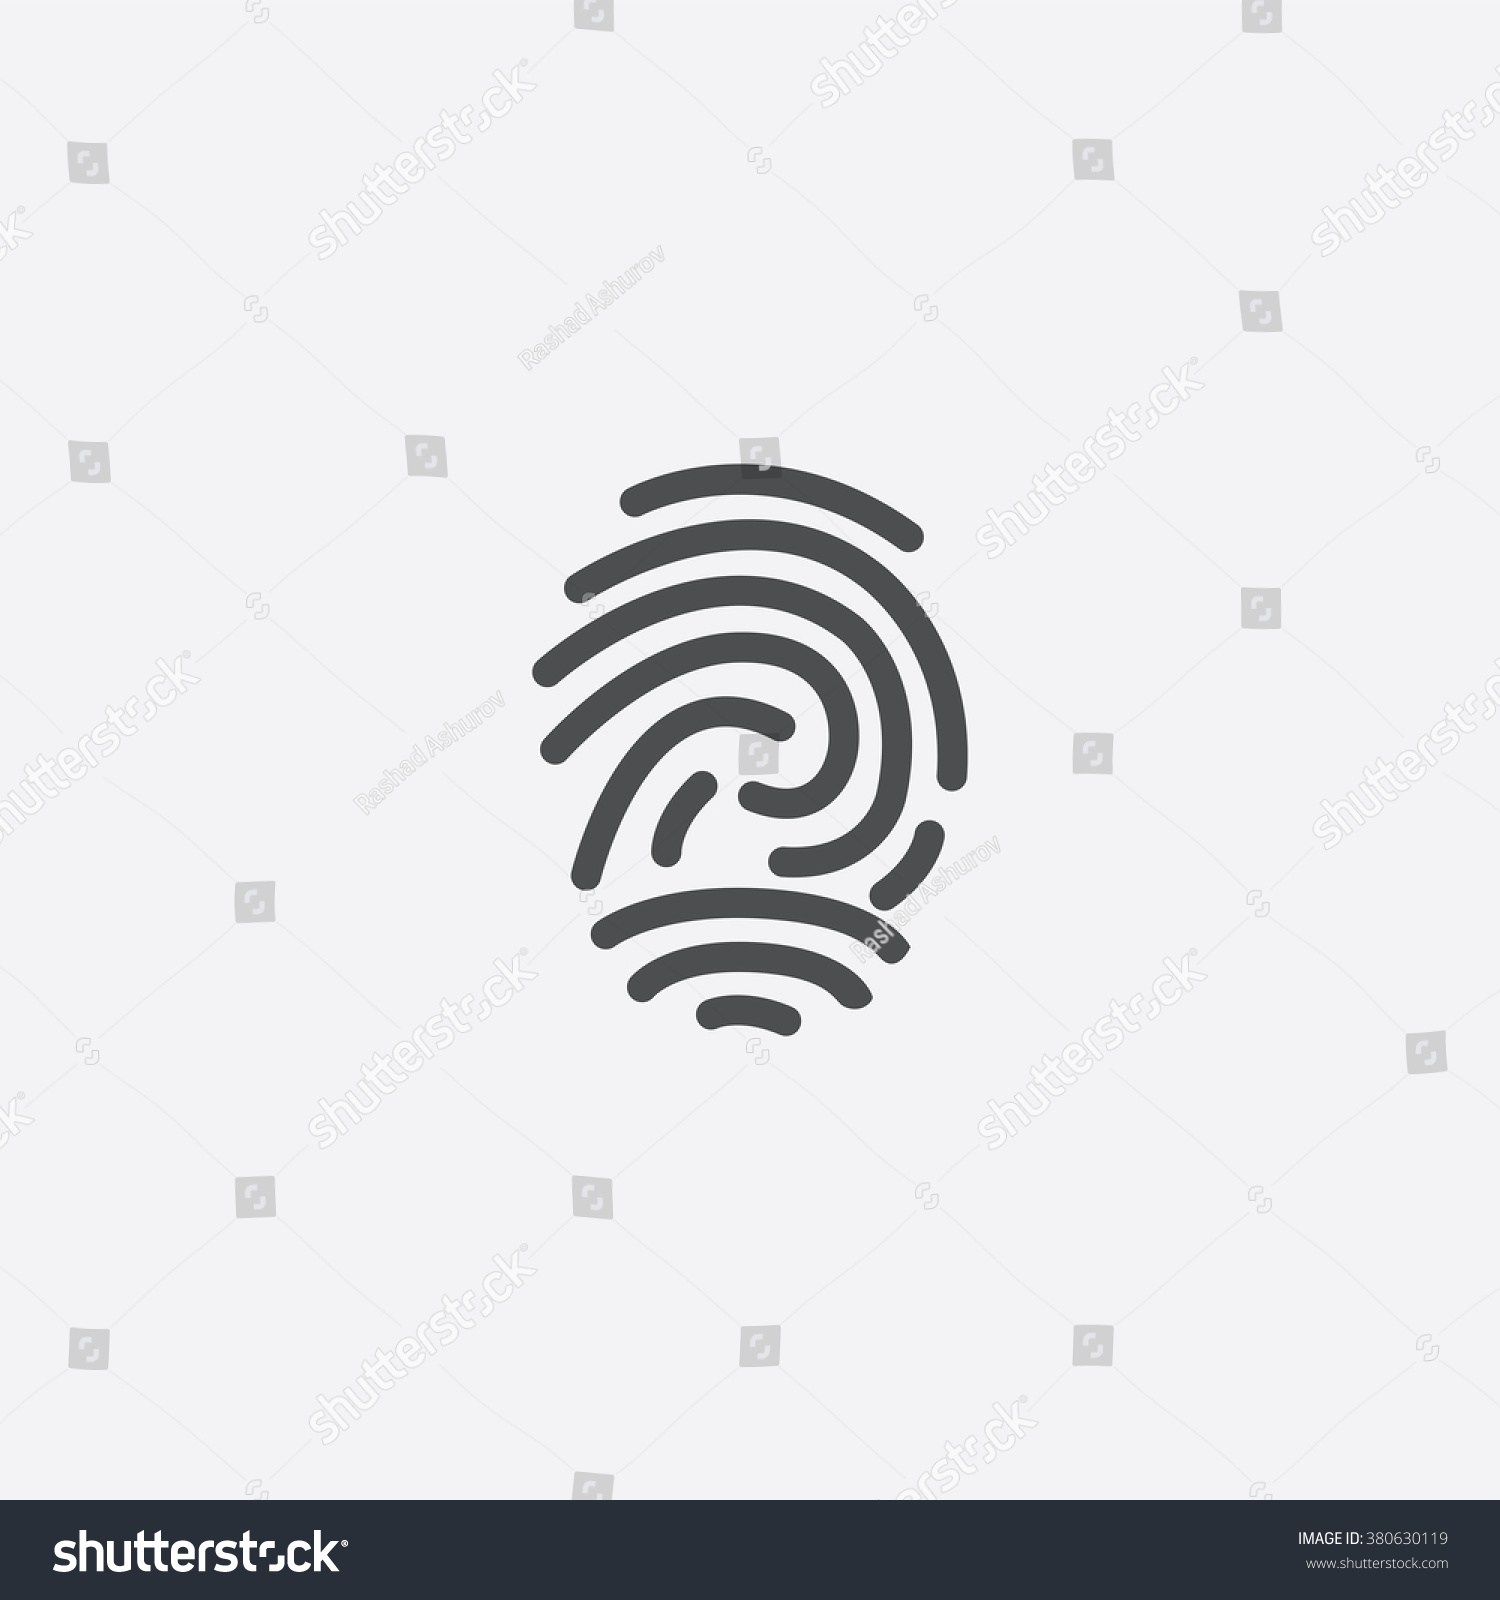 fingerprint Icon fingerprint Icon Vector fingerprint Icon Art fingerprint Icon eps fingerprint Icon Image fingerprint Icon logo fingerprint Sign fingerprint Icon Flat fingerprint Icon design